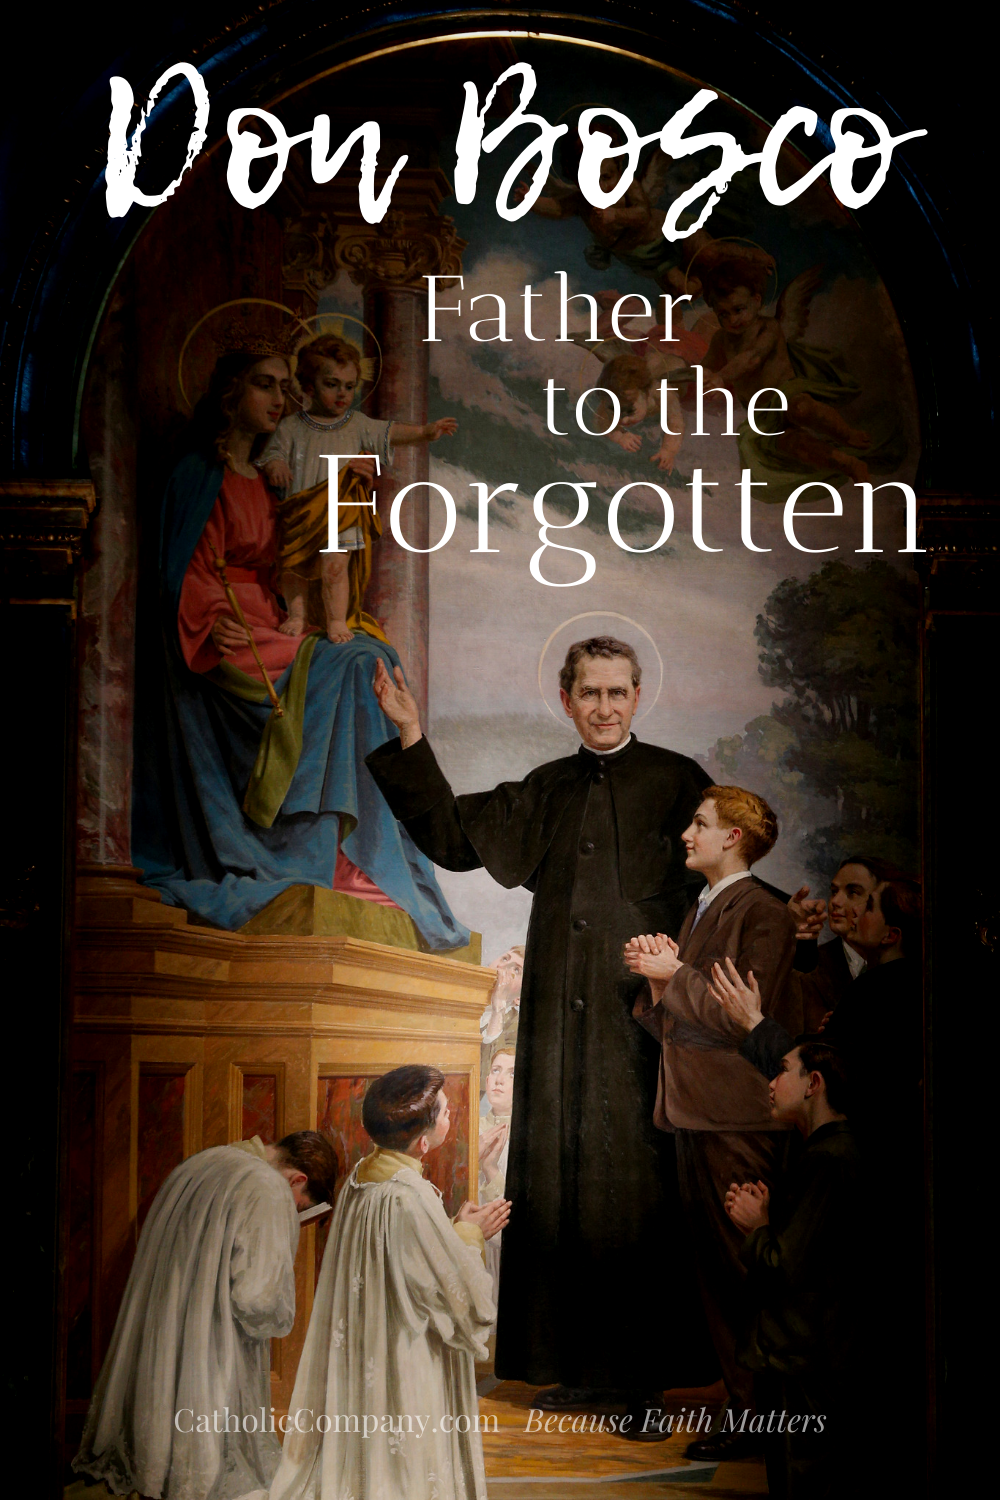 We need St. Bosco's intercession. More than ever. To understand why, let's re-discover his amazing story.